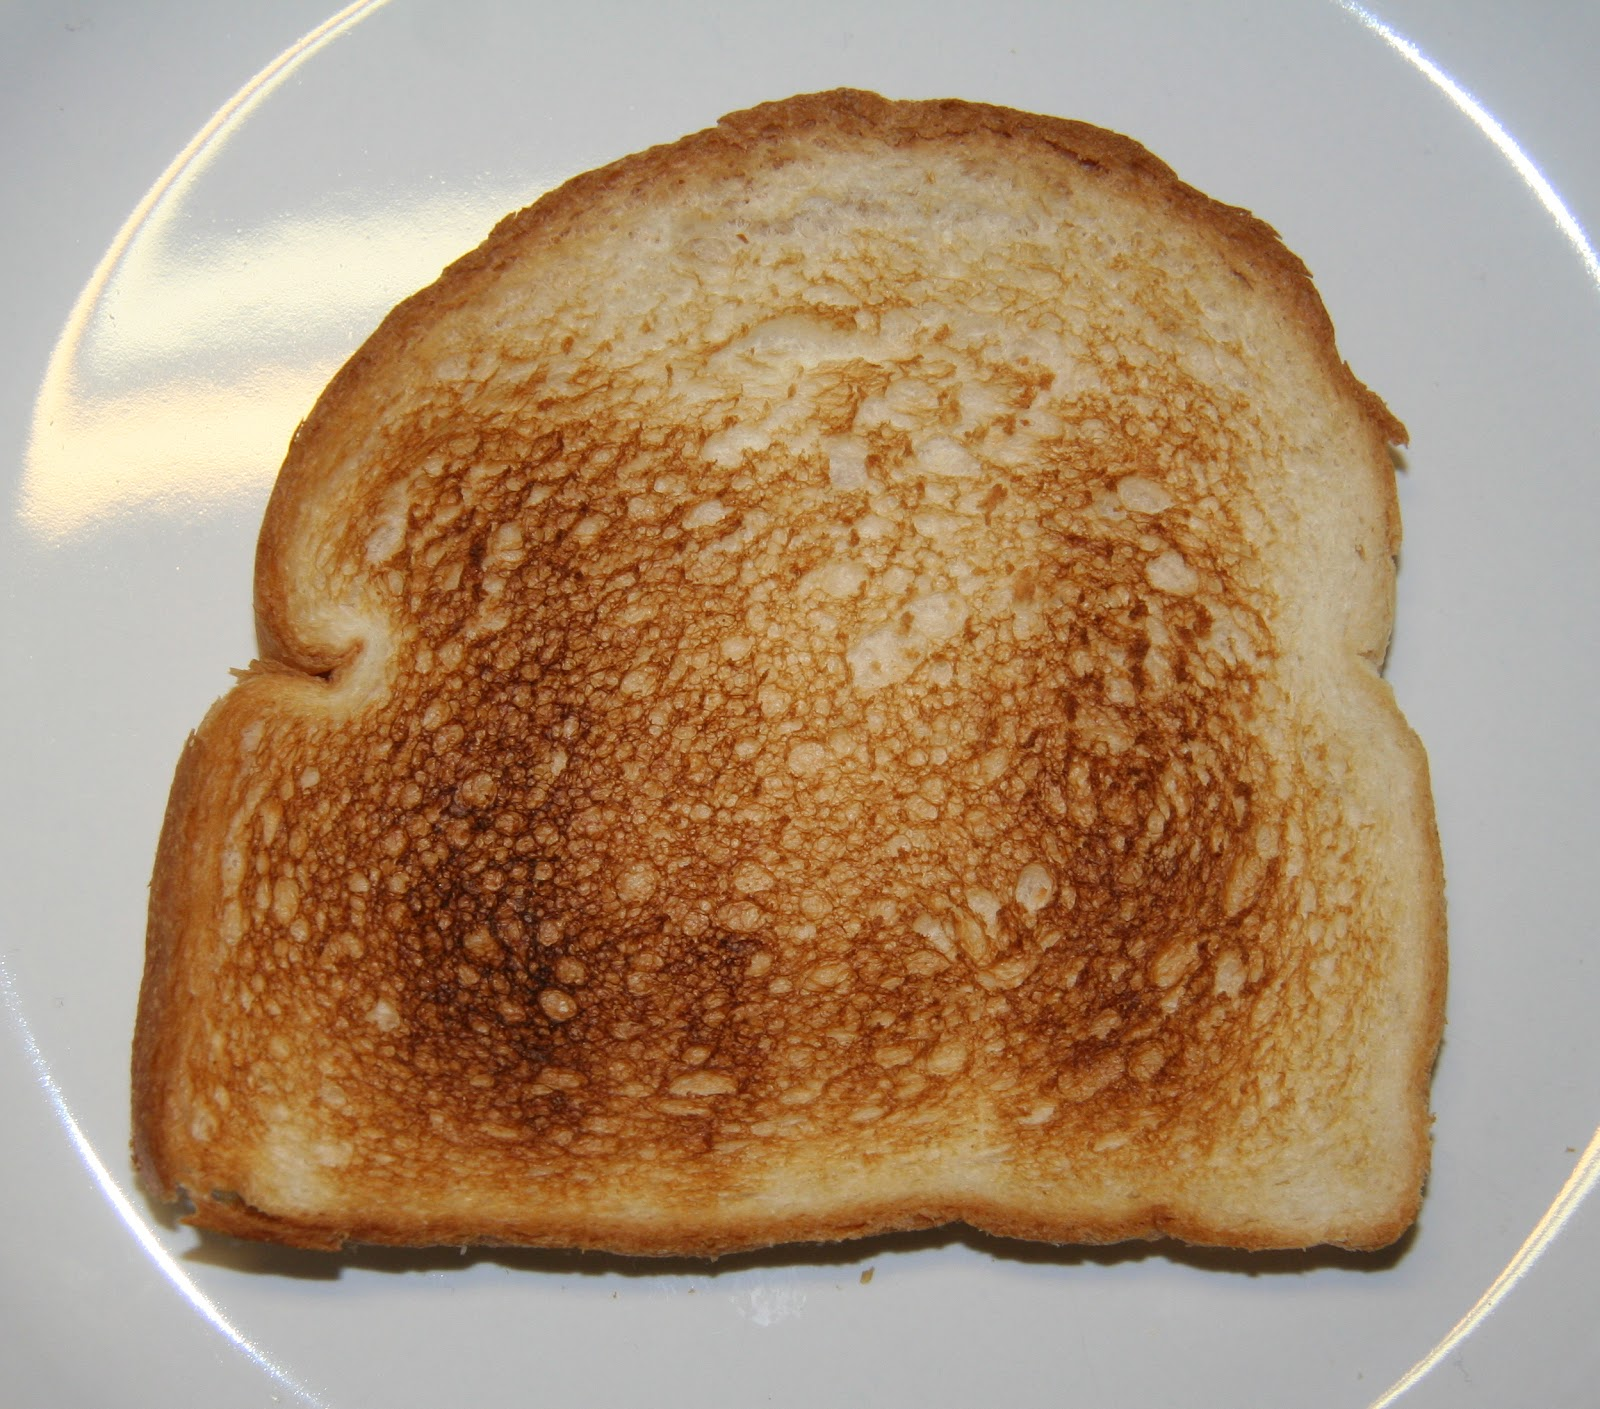 A plain dry slice of toast on